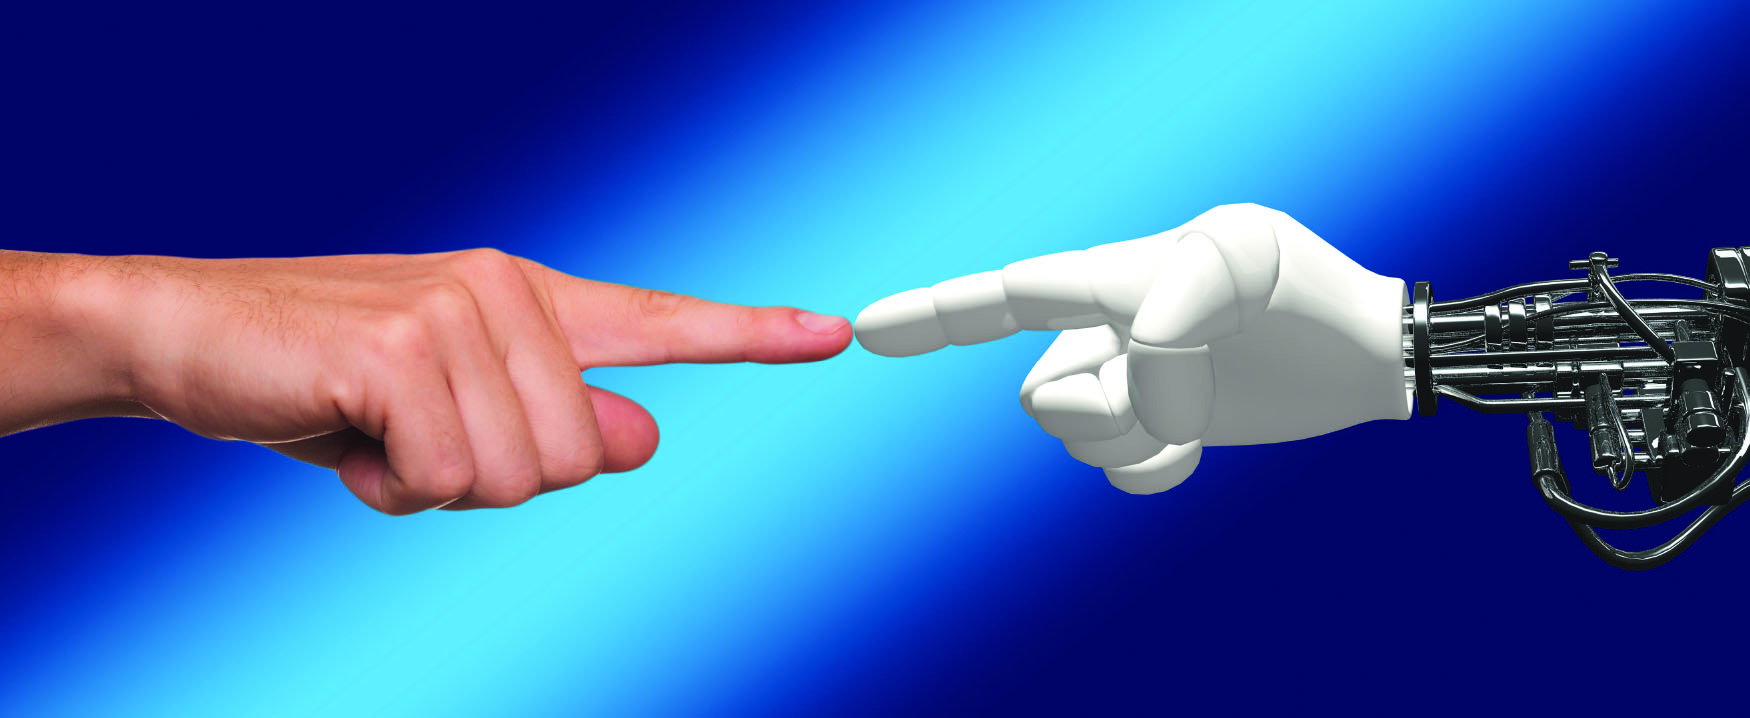 This image shows a human hand on the left and a robot hand on the right. Their index fingers are touching in the middle.